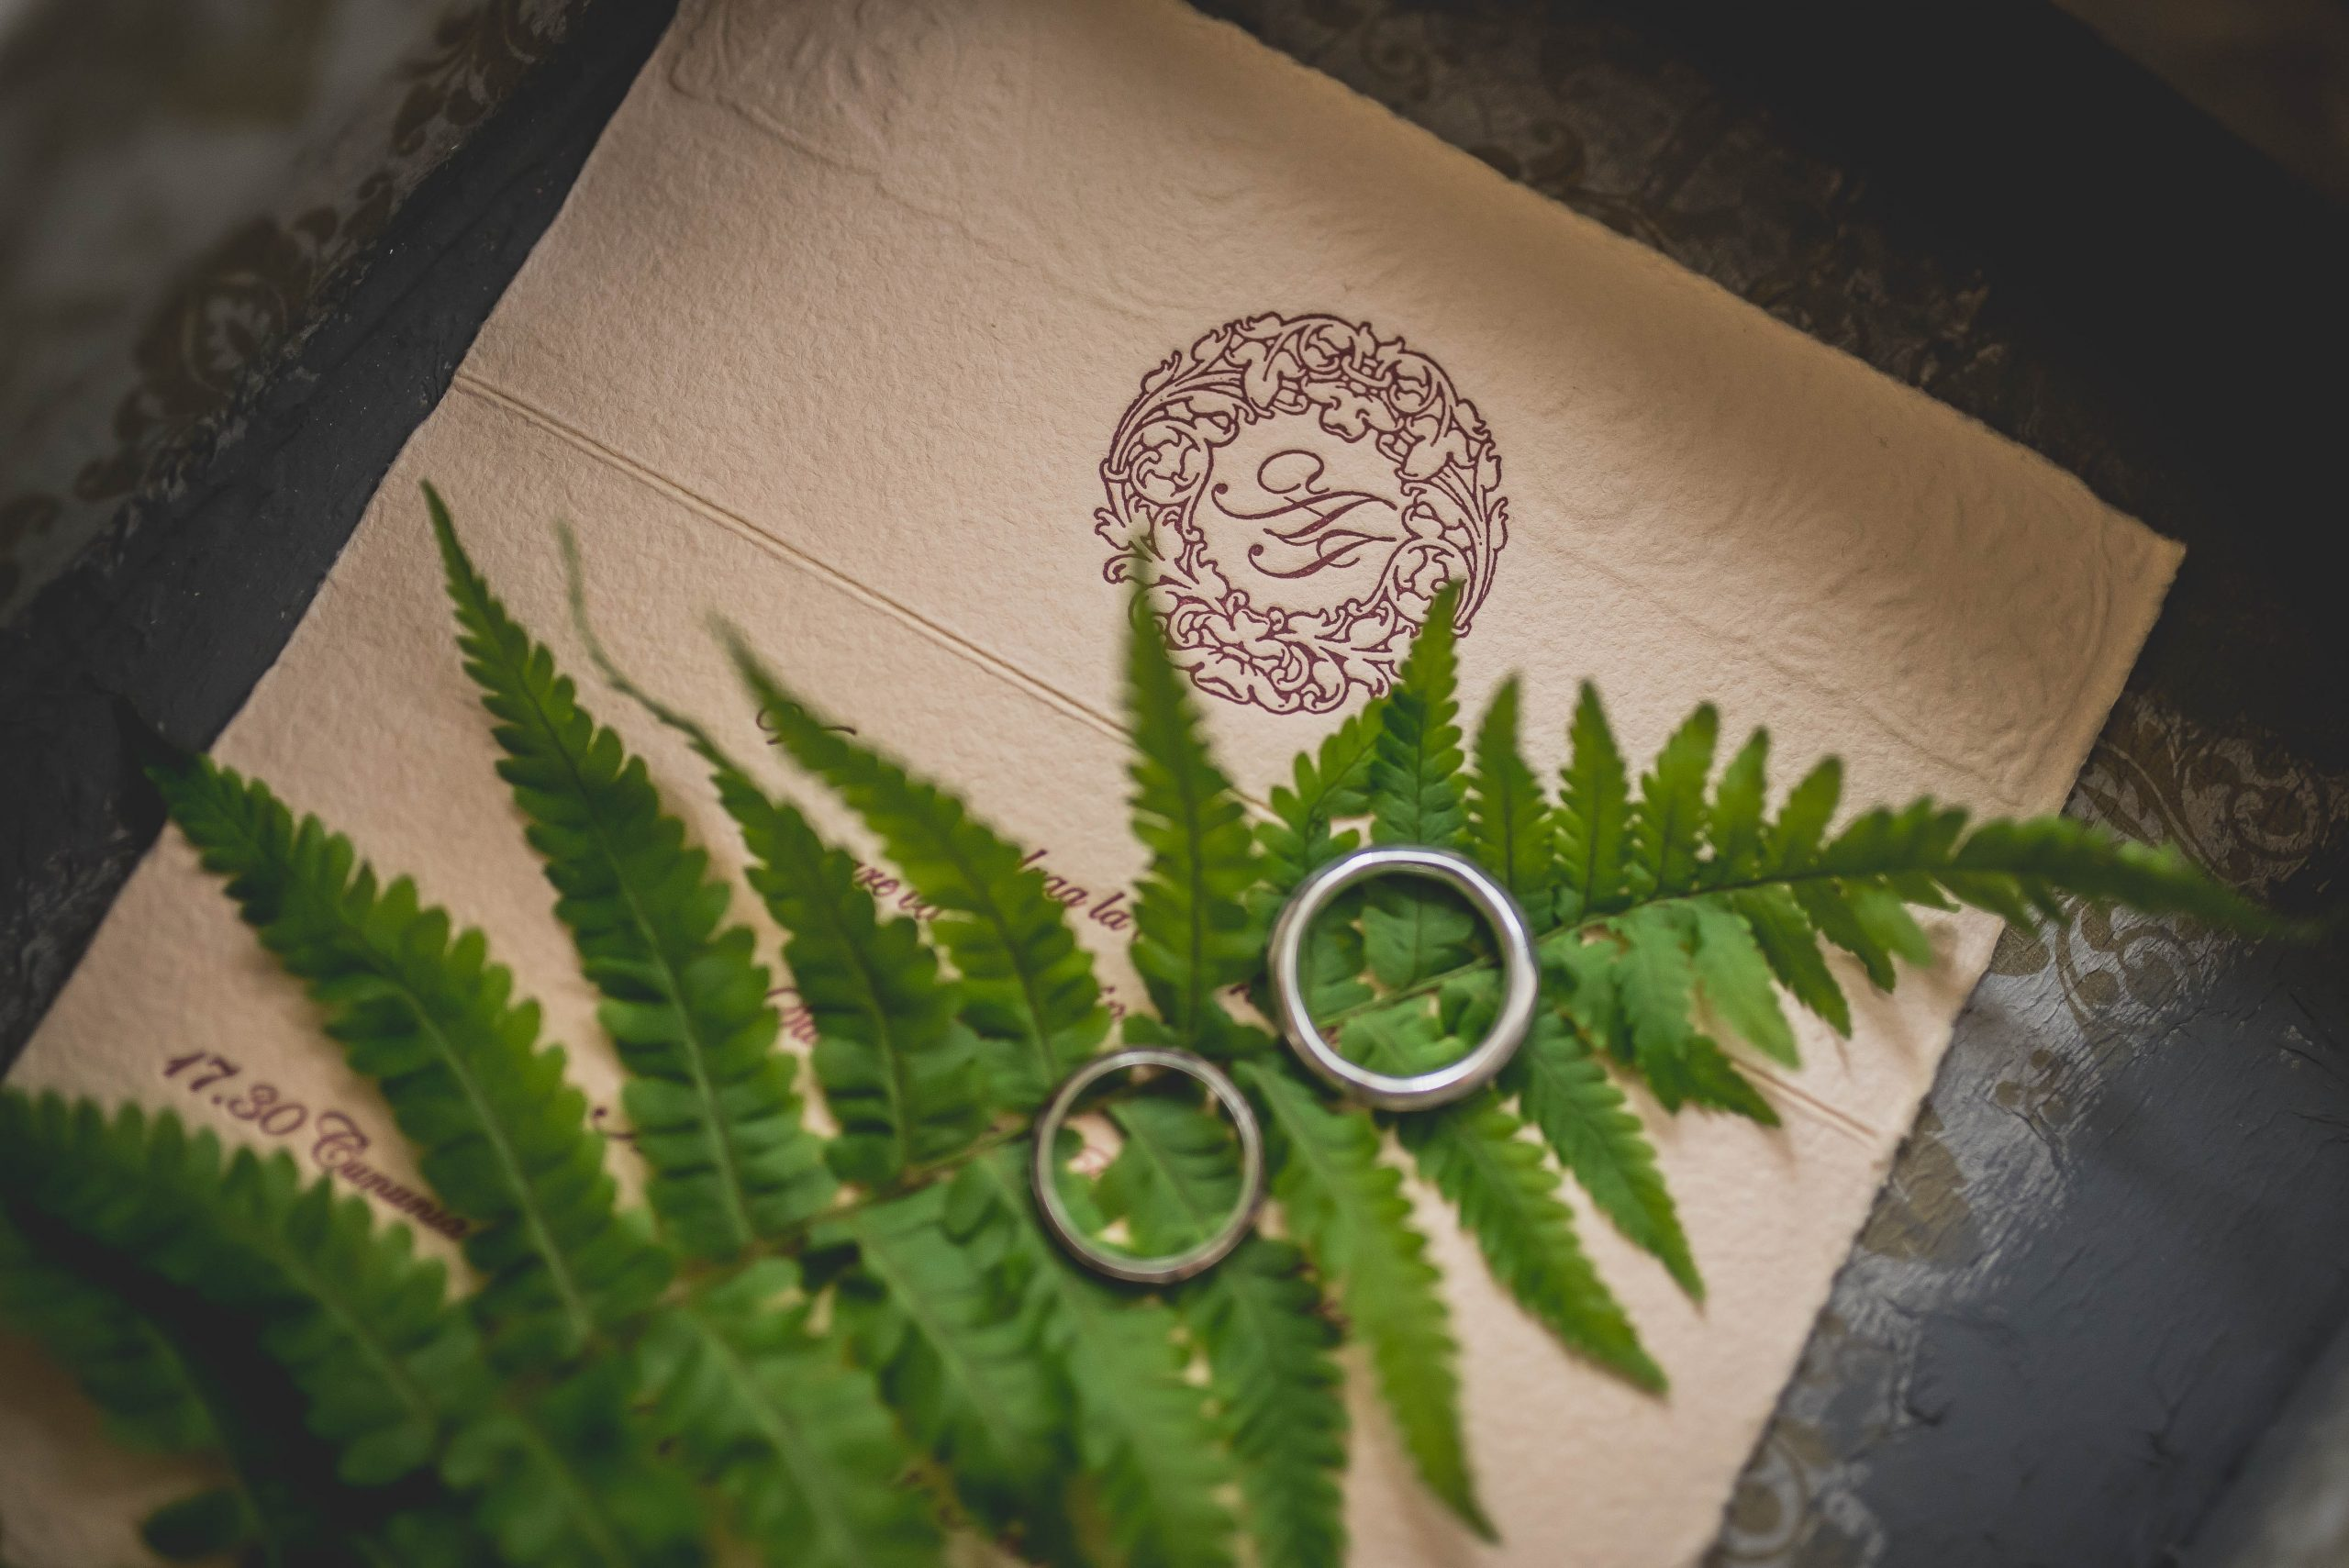 RSVP card with rings and plant on surface.